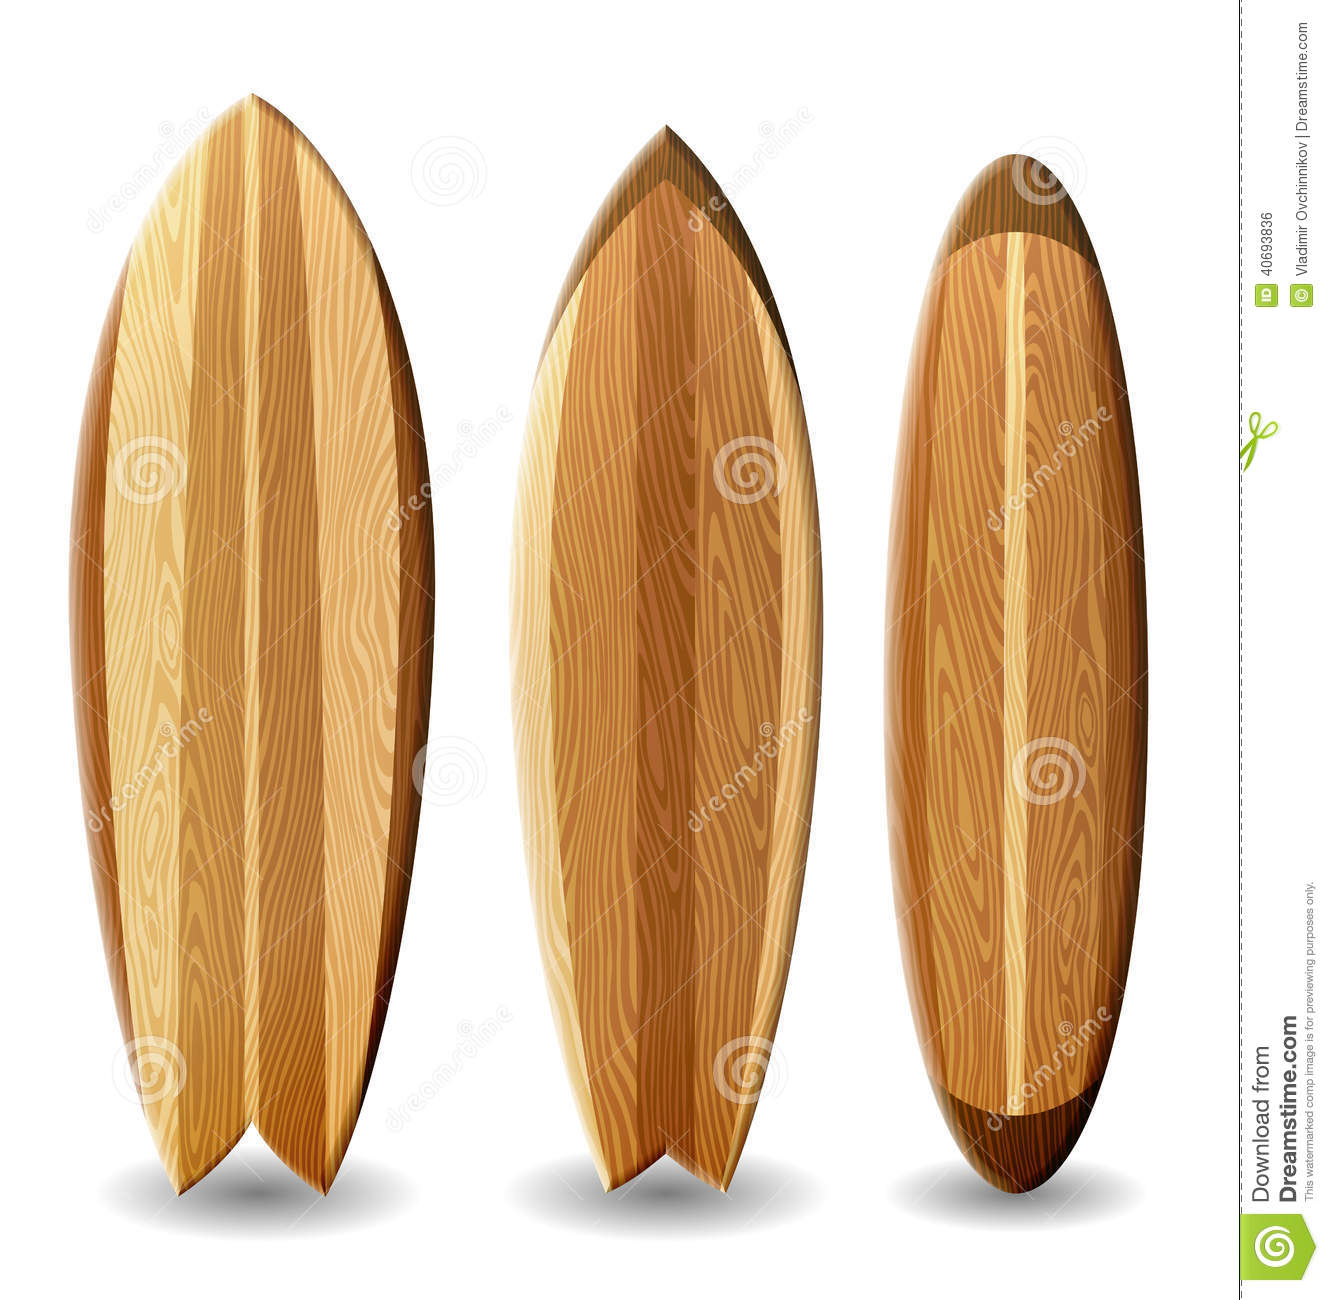 planches de surf en bois illustration stock illustration du surfer 40693836. Black Bedroom Furniture Sets. Home Design Ideas